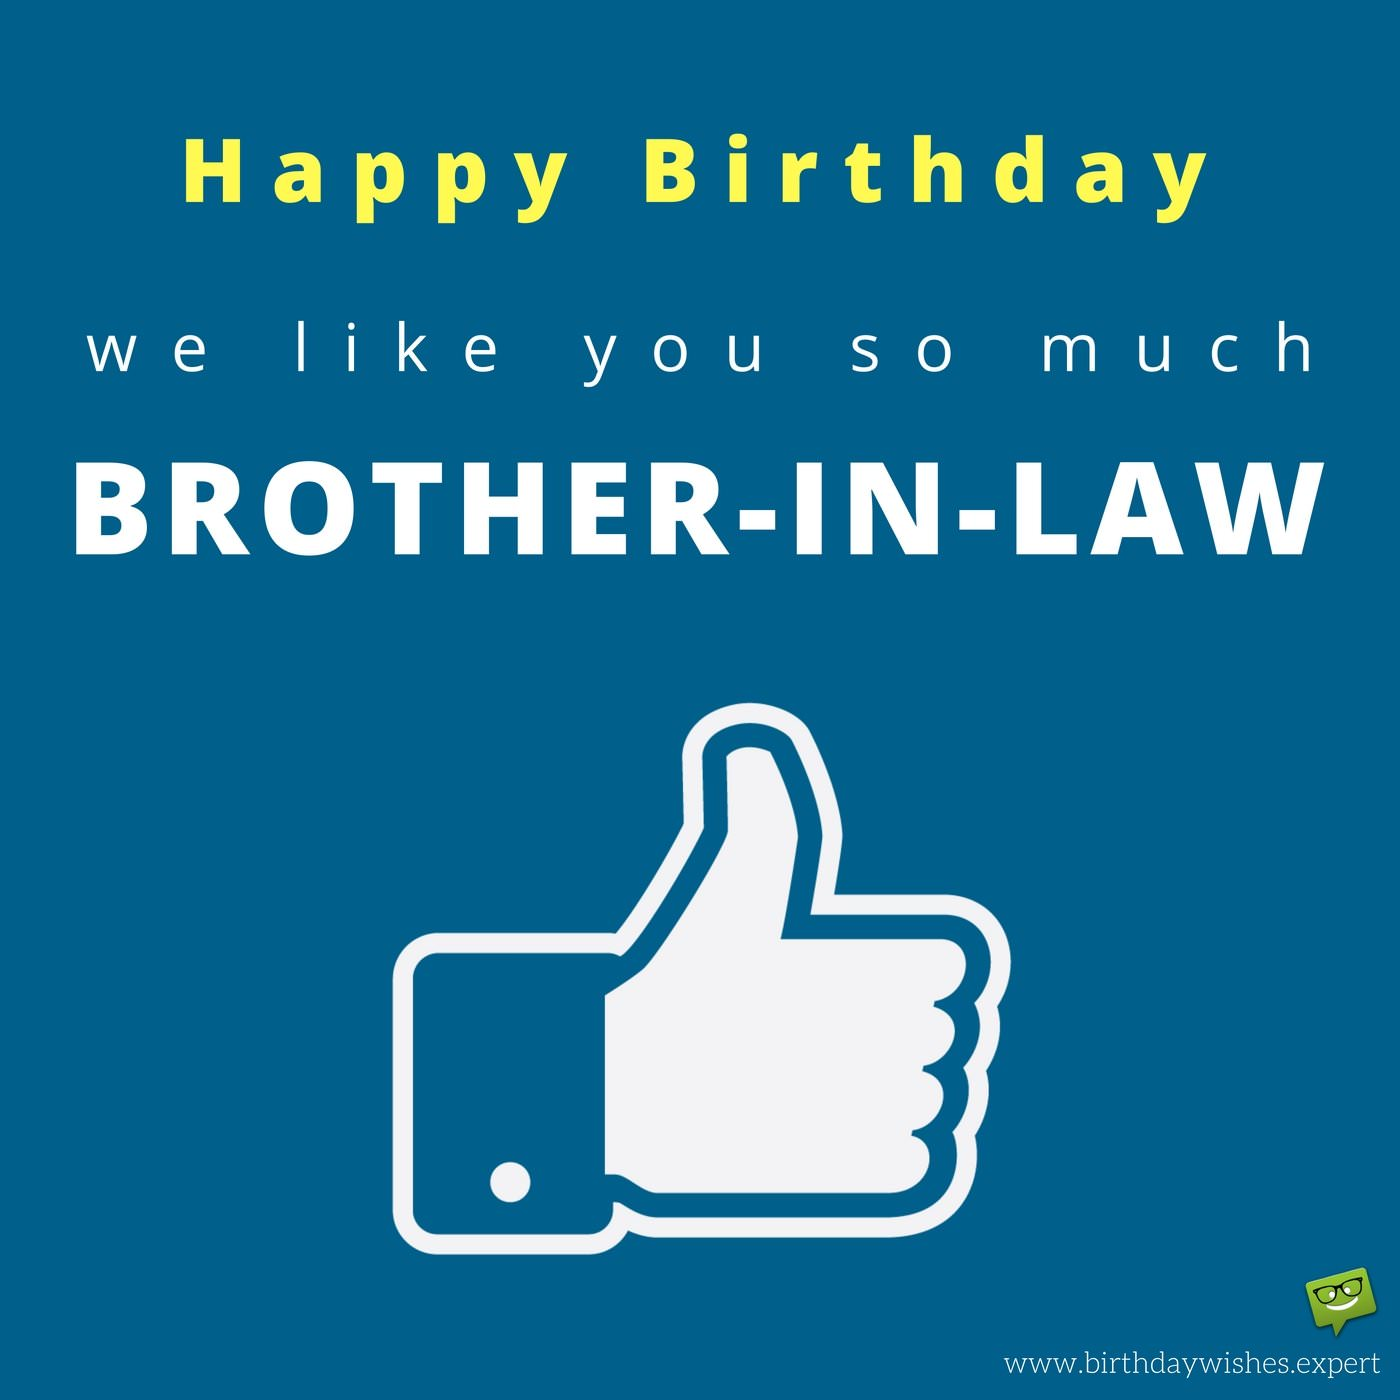 Birthday Wishes For Your Brother In Law